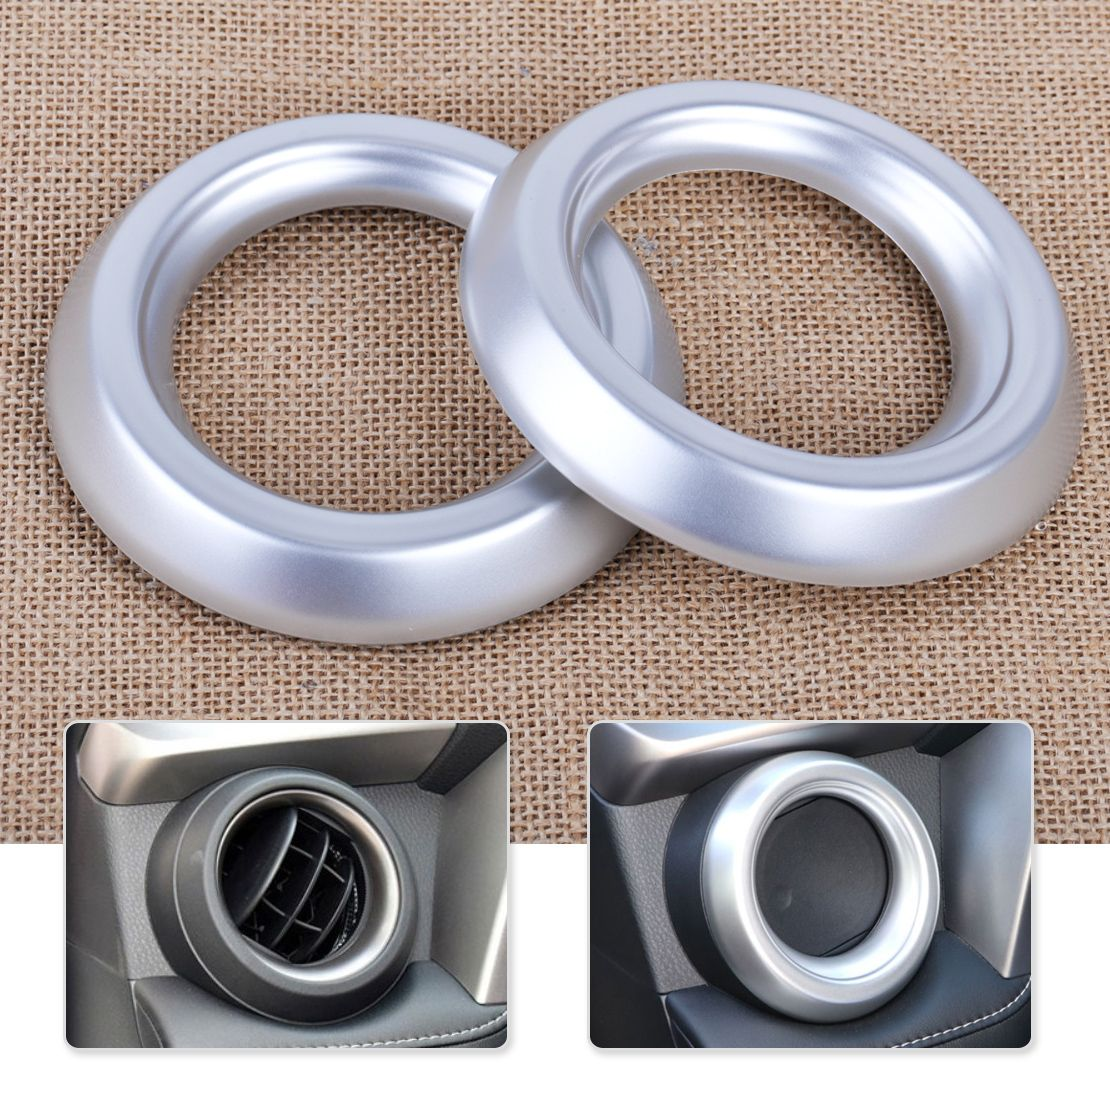 Car-styling 2pcs ABS Plastic Chrome Plated Front Air Vent AC Outlet Frame Cover Trim & Car-styling 2pcs ABS Plastic Chrome Plated Front Air Vent AC Outlet ...